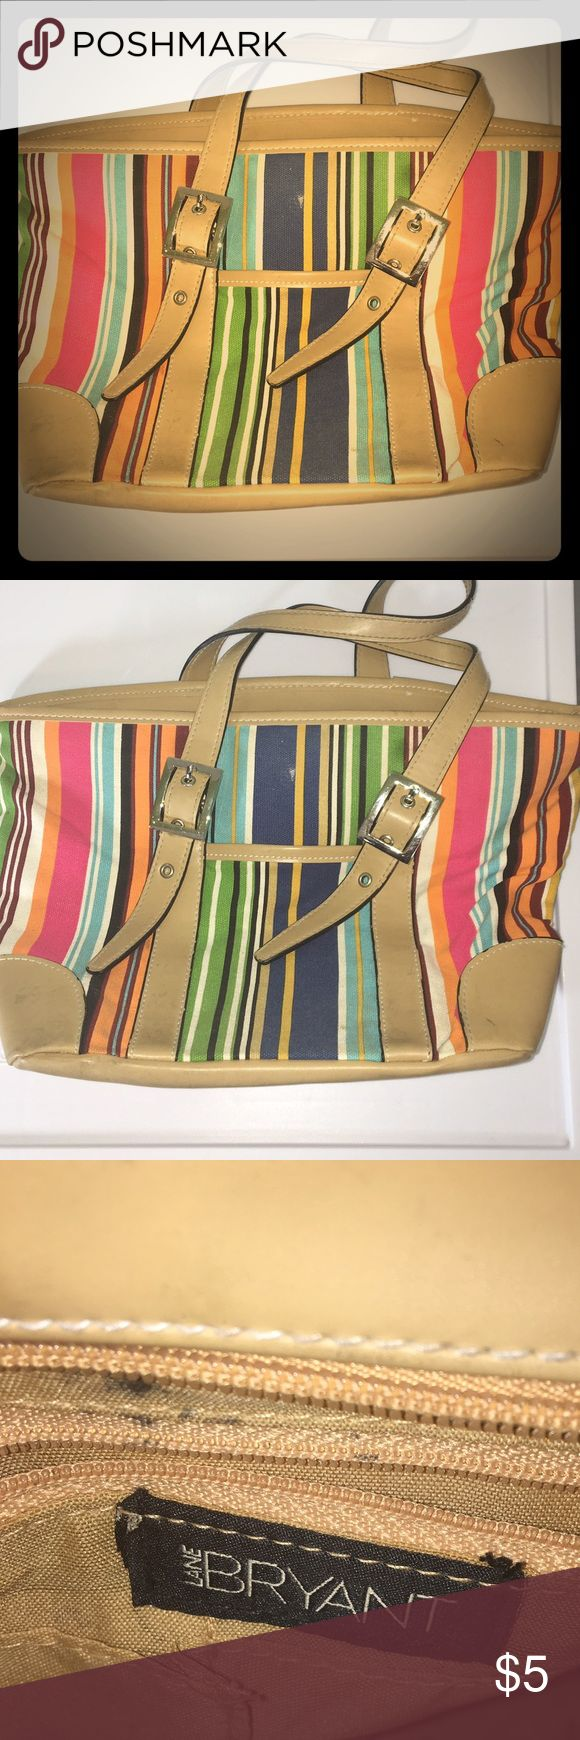 Lane Bryant Multicolored Striped Purse A beautiful and versatile purse from Lane Bryant. Add the perfect pop of color to any outfit with this piece. Shows some wear but it is still in great condition! Lane Bryant Bags Shoulder Bags